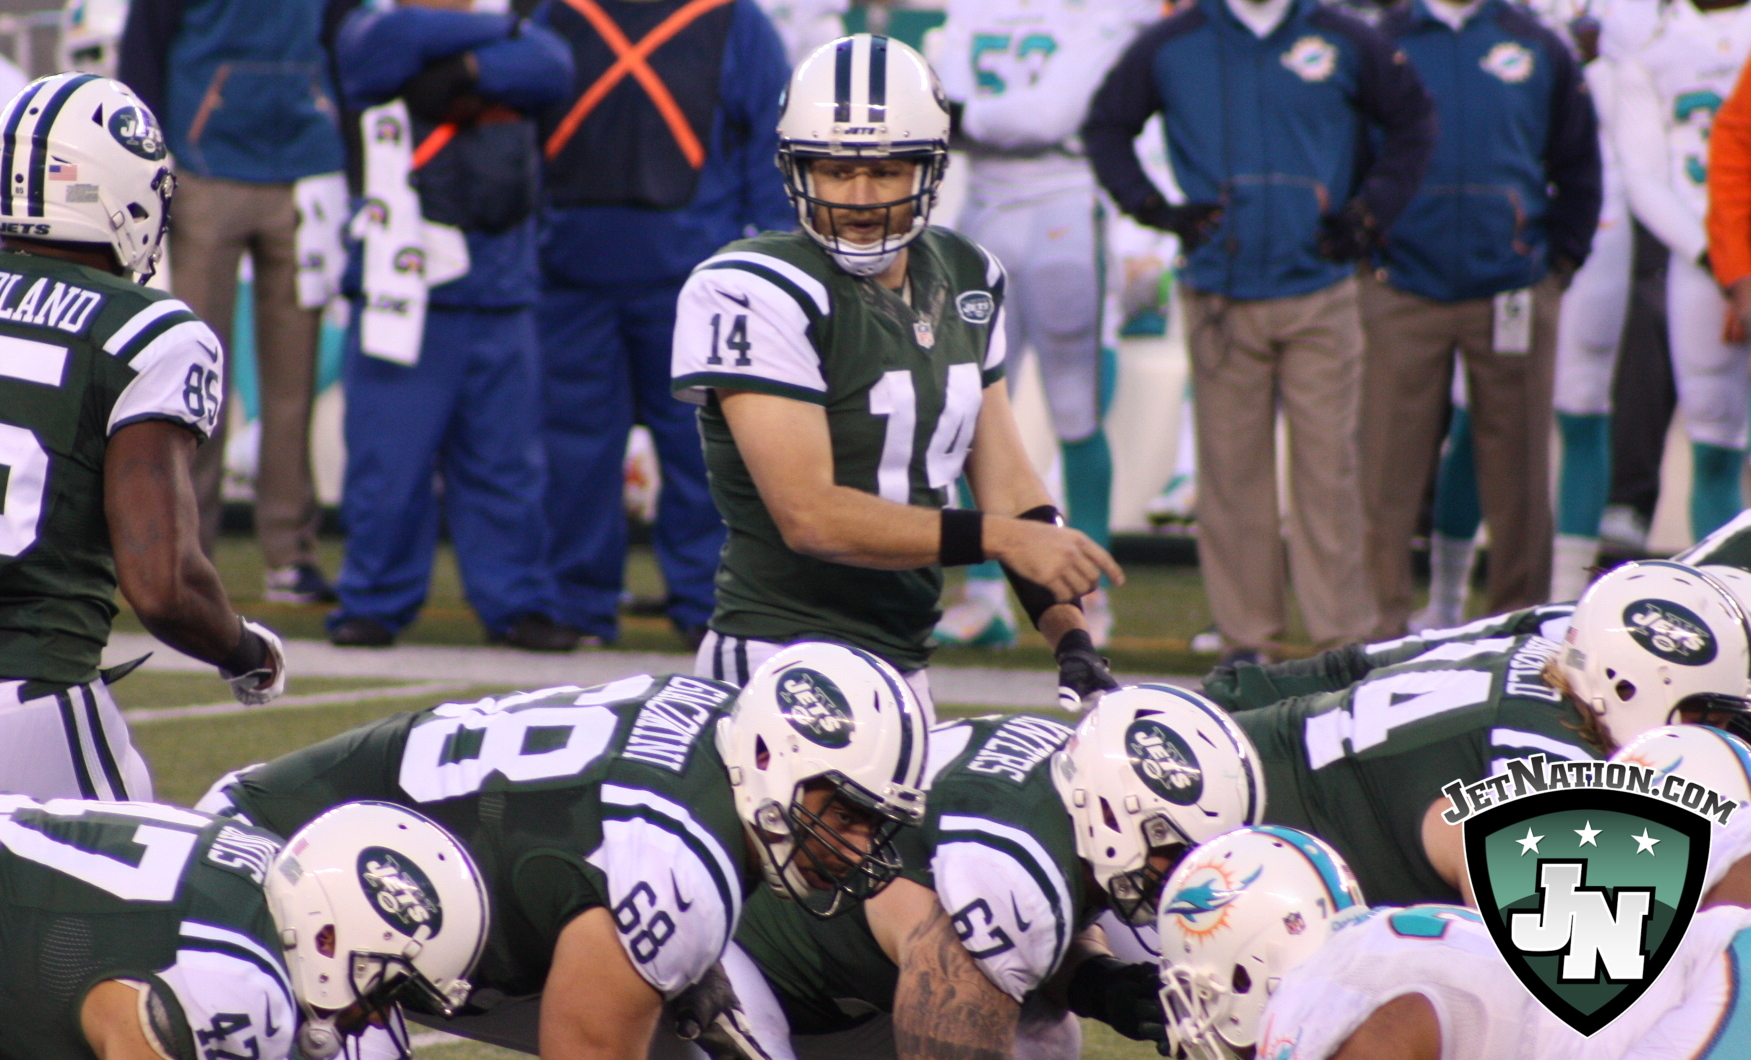 Jets Offer to Fitzpatrick Reportedly 3 yrs/$24 million